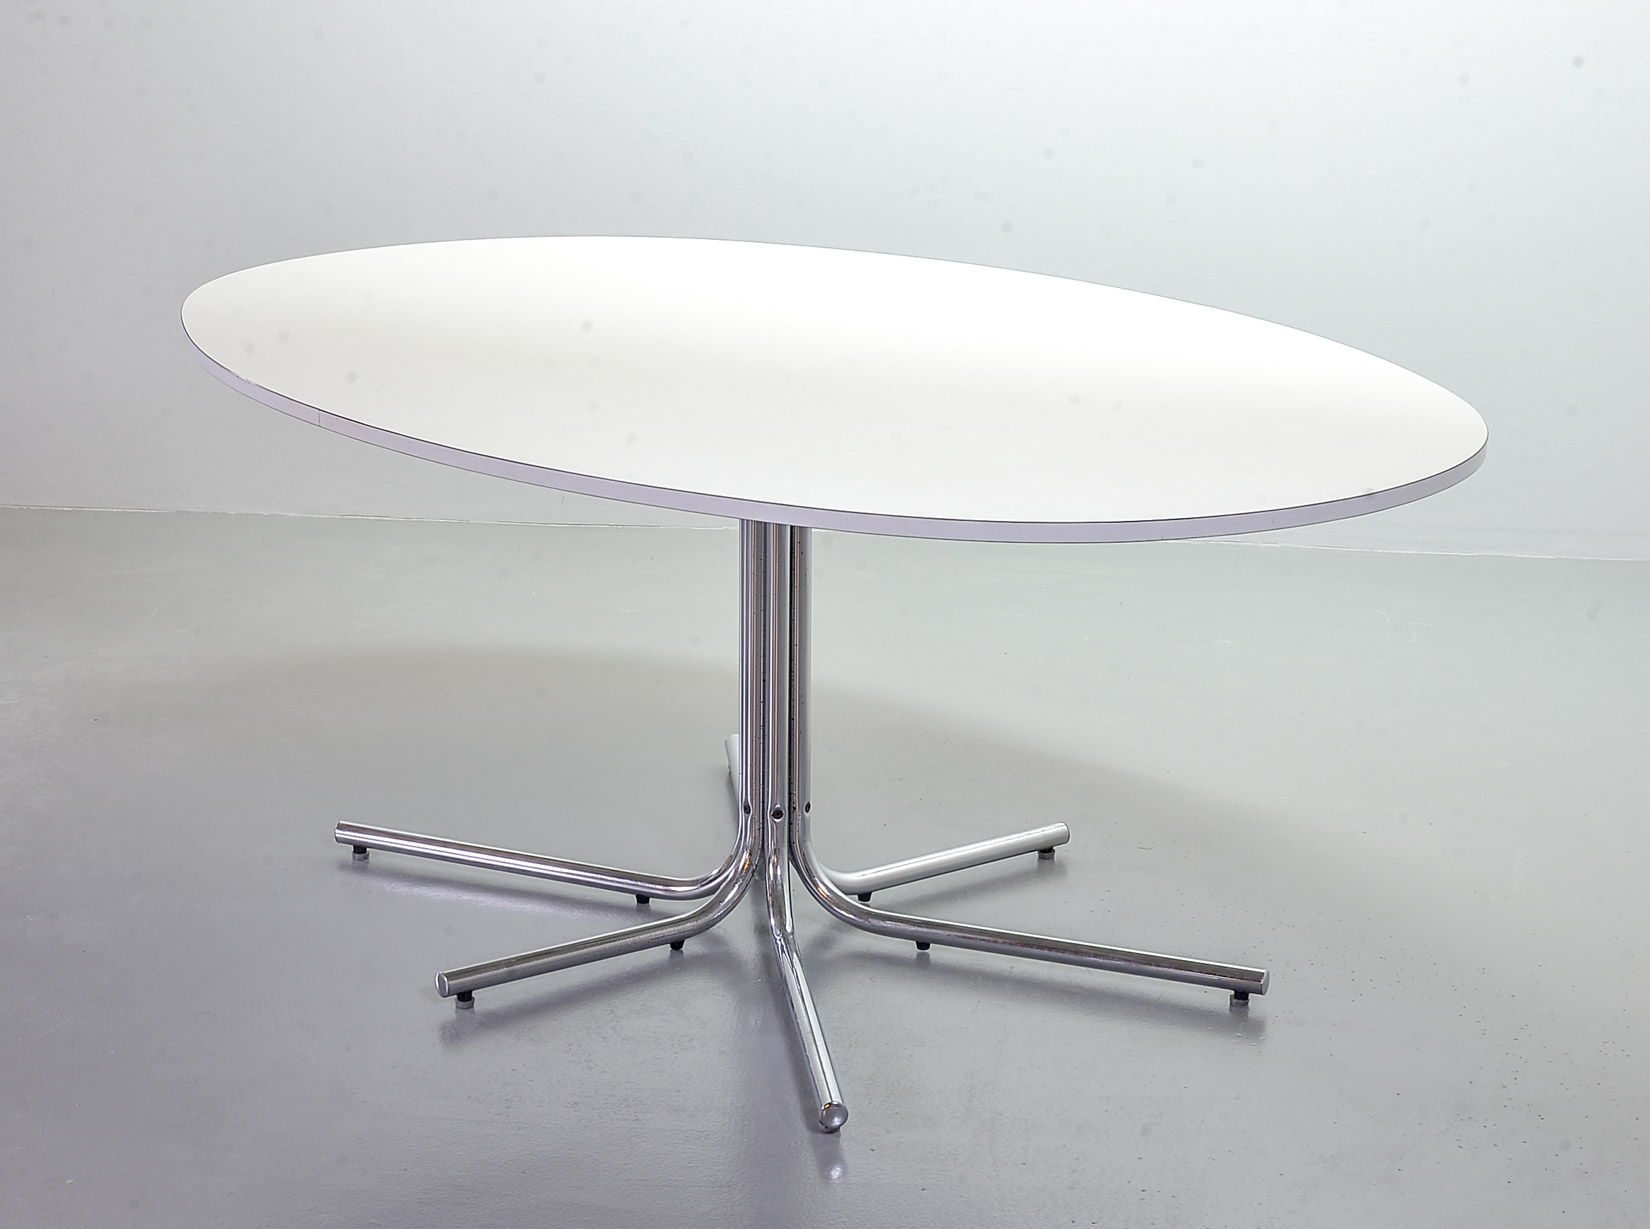 Oval Dining Table White Formica Tabletop And Chrome Steel Within Newest Kohut 47'' Pedestal Dining Tables (View 8 of 15)